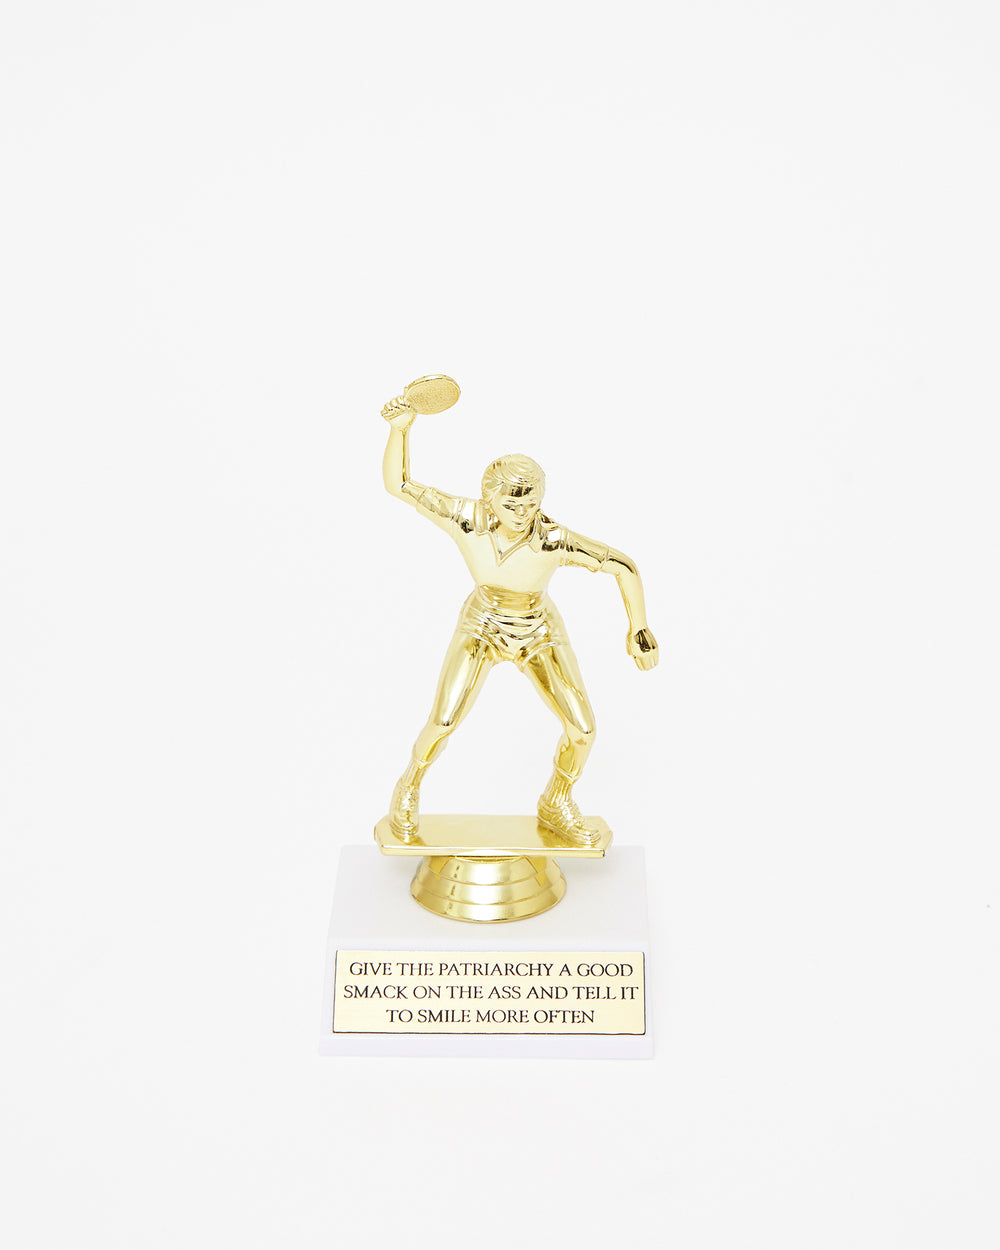 Smack the Patriarchy's Ass Trophy